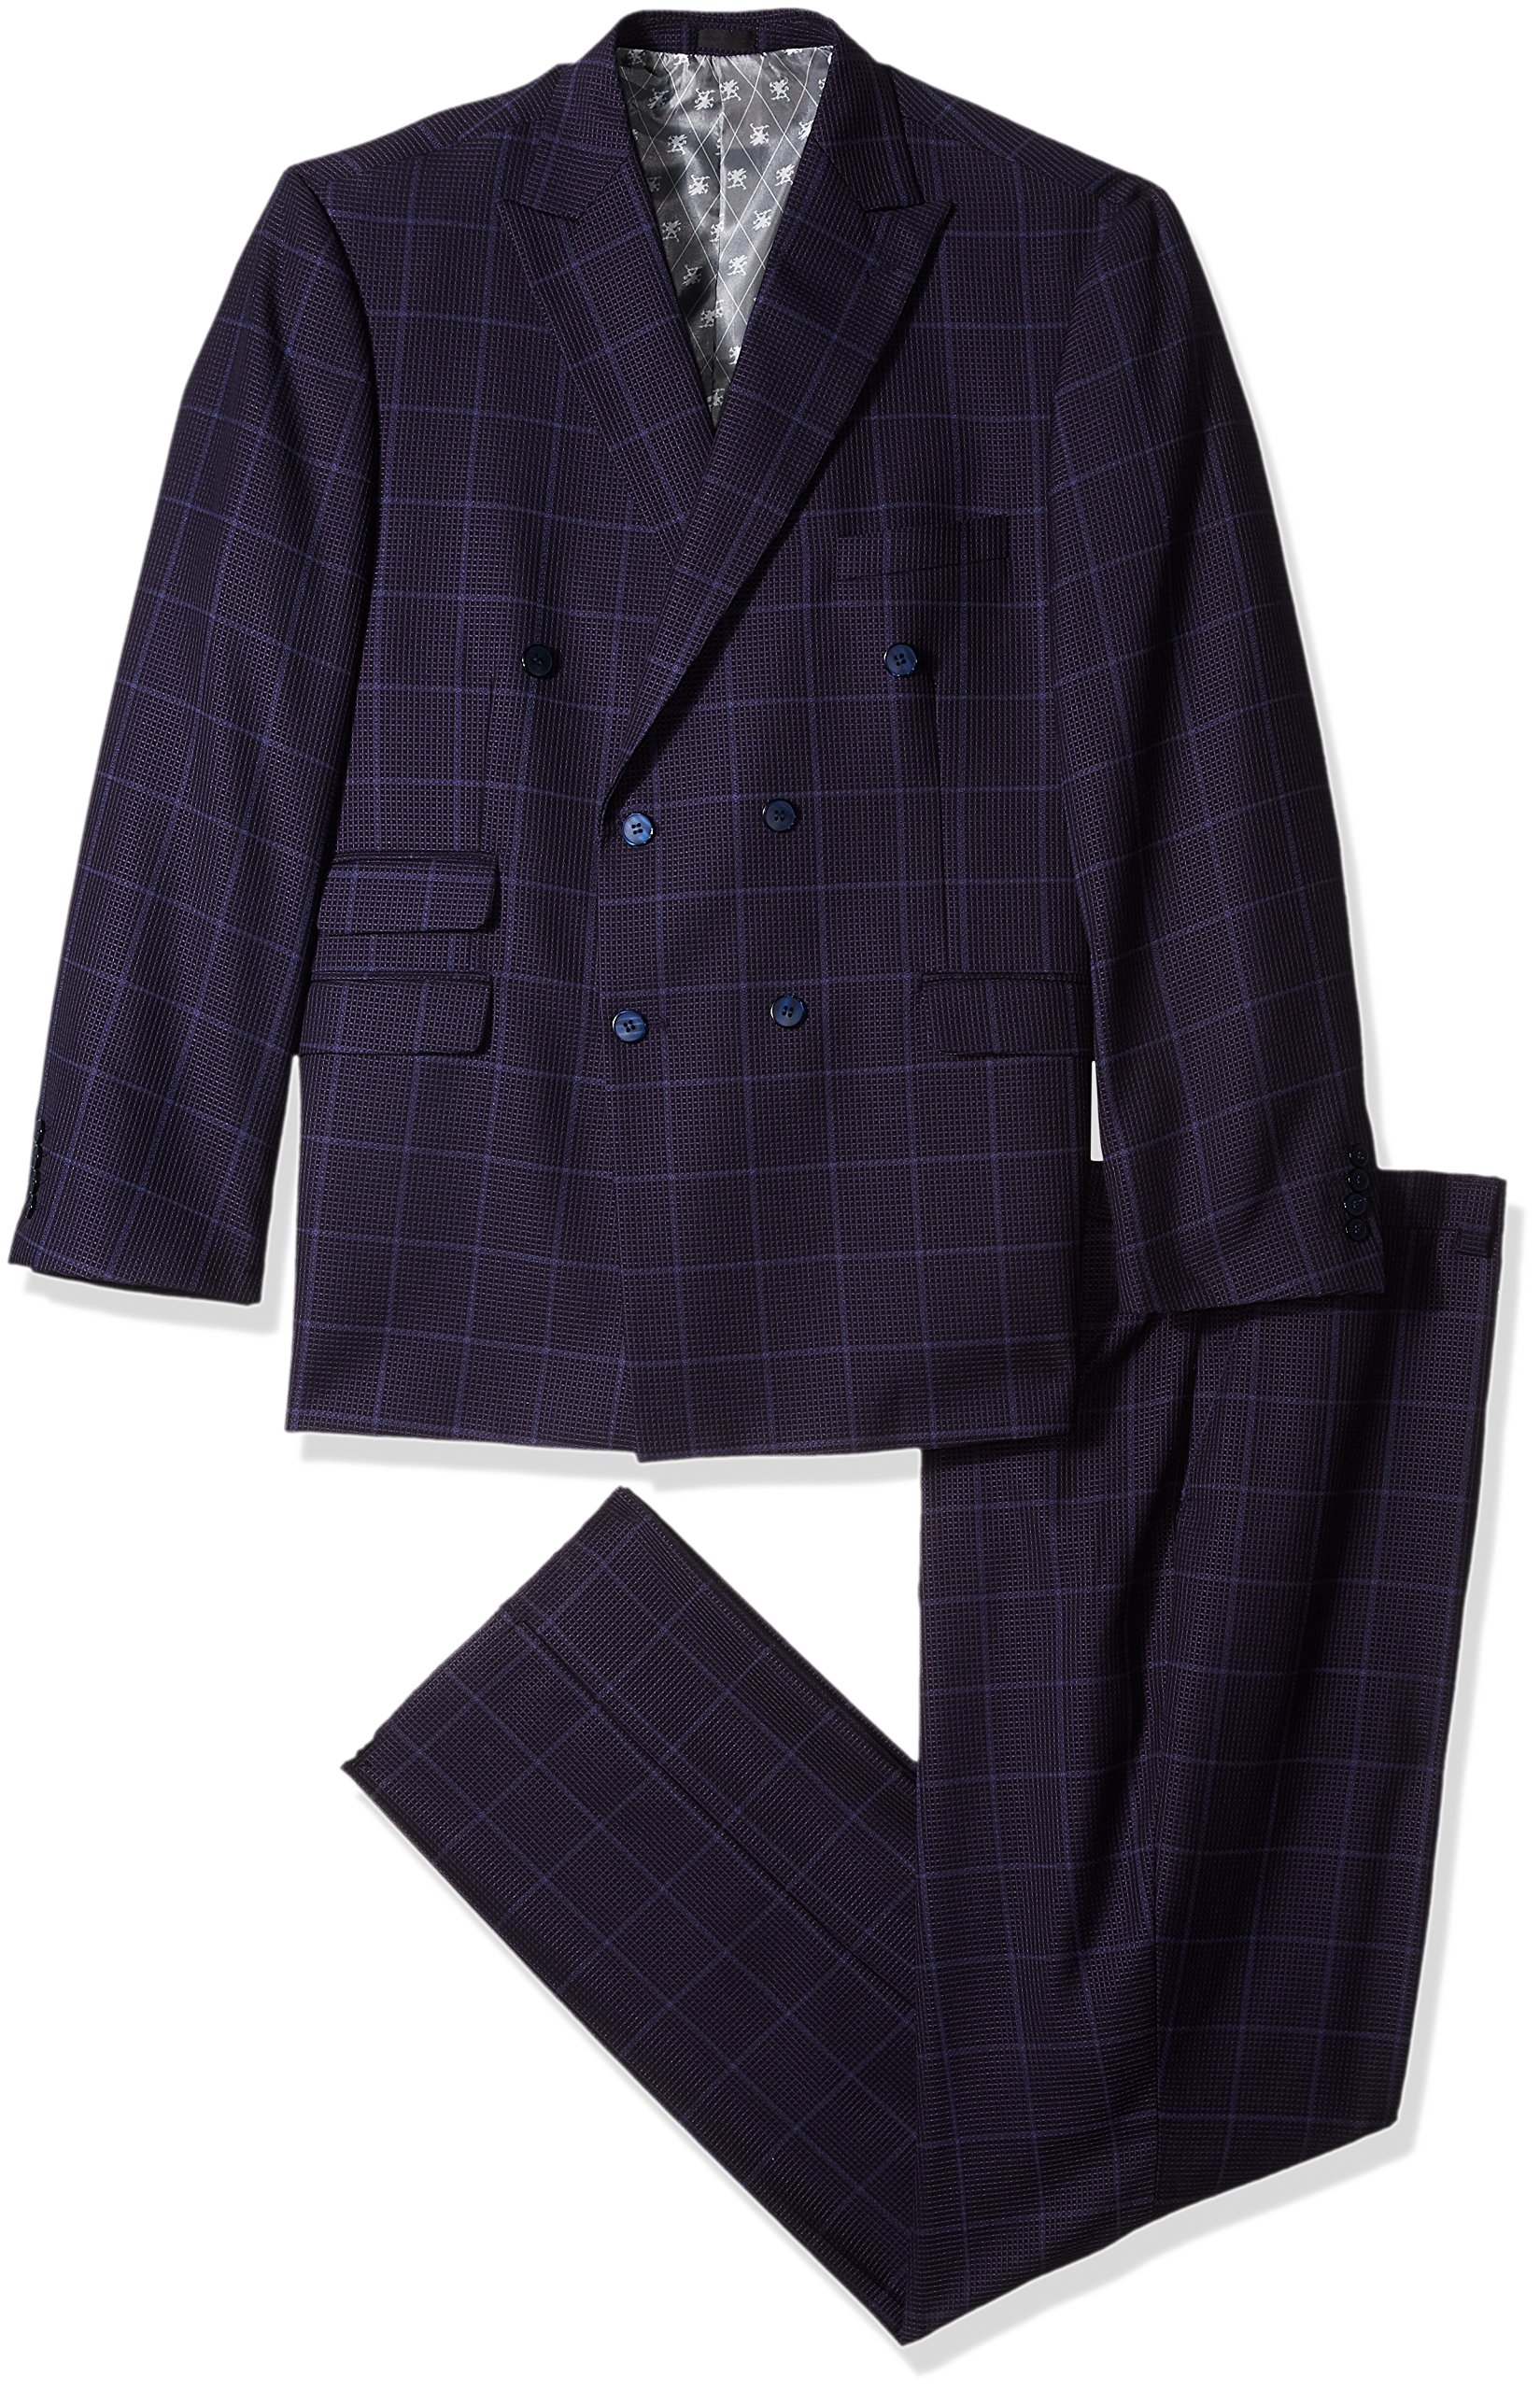 Stacy Adams Men's Big and Tall Sam Double Breasted Suit Mini Check, Purple, 56 Regular